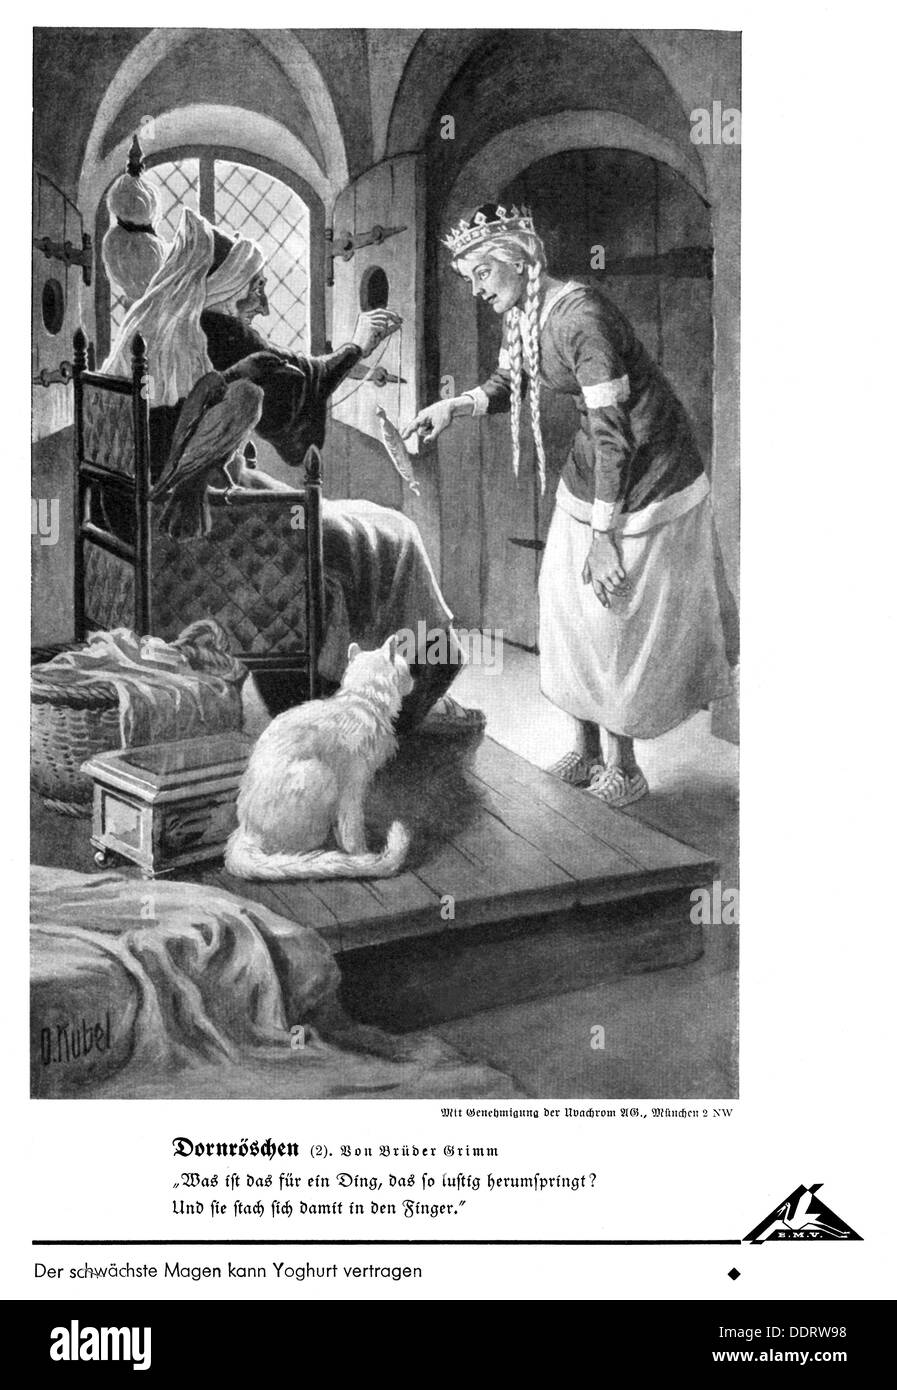 literature, fairy tales, Grimm Brothers, 'Sleeping Beauty', Sleeping Beauty and the old lady with the spindle, illustration by Otto Kubel (1868 - 1951), from: 'Bilderatlas zu den bayerischen Lesebüchern' (Picture Atlas to the Bavarian Storybooks), fairy tales, editor: Bayerische Milchversorgung, Nuremberg, print: F.Bruckmann AG, Munich, late 1930s, Additional-Rights-Clearences-NA - Stock Image